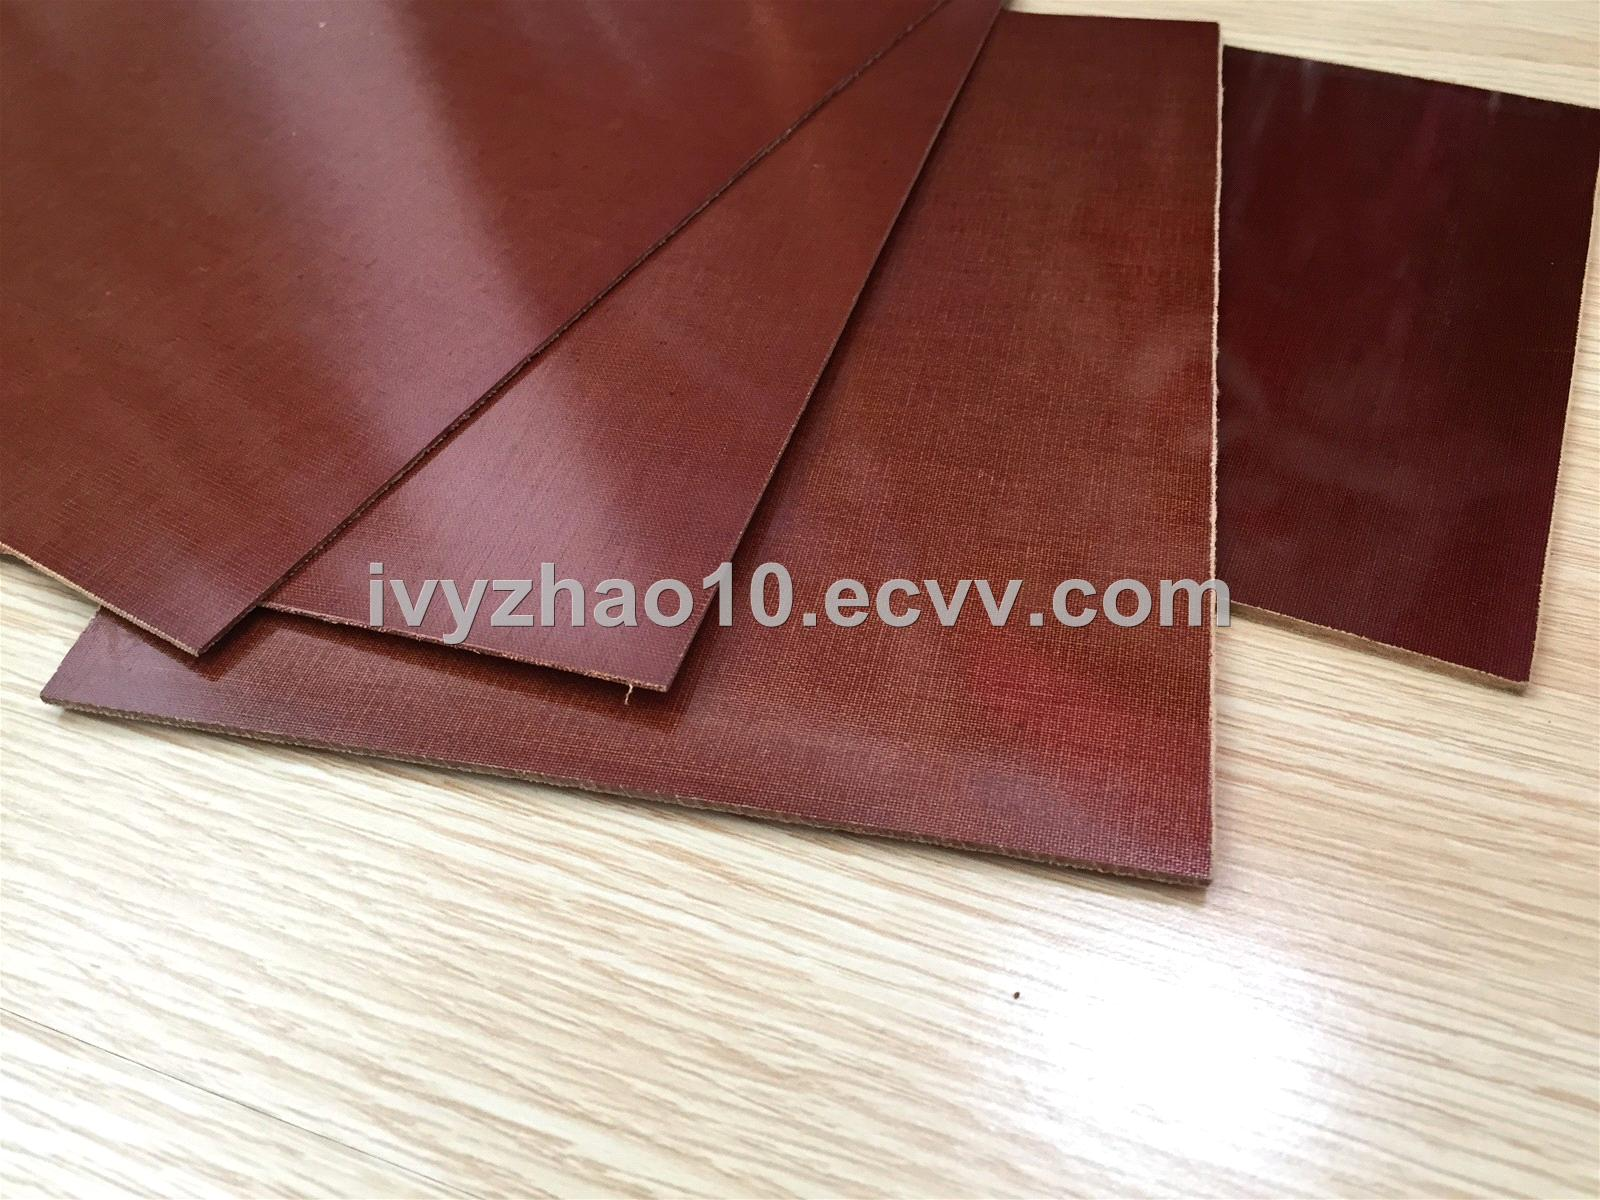 EN 60893-3-4: PFCC (Plates of cotton fabric with phenolic resin)